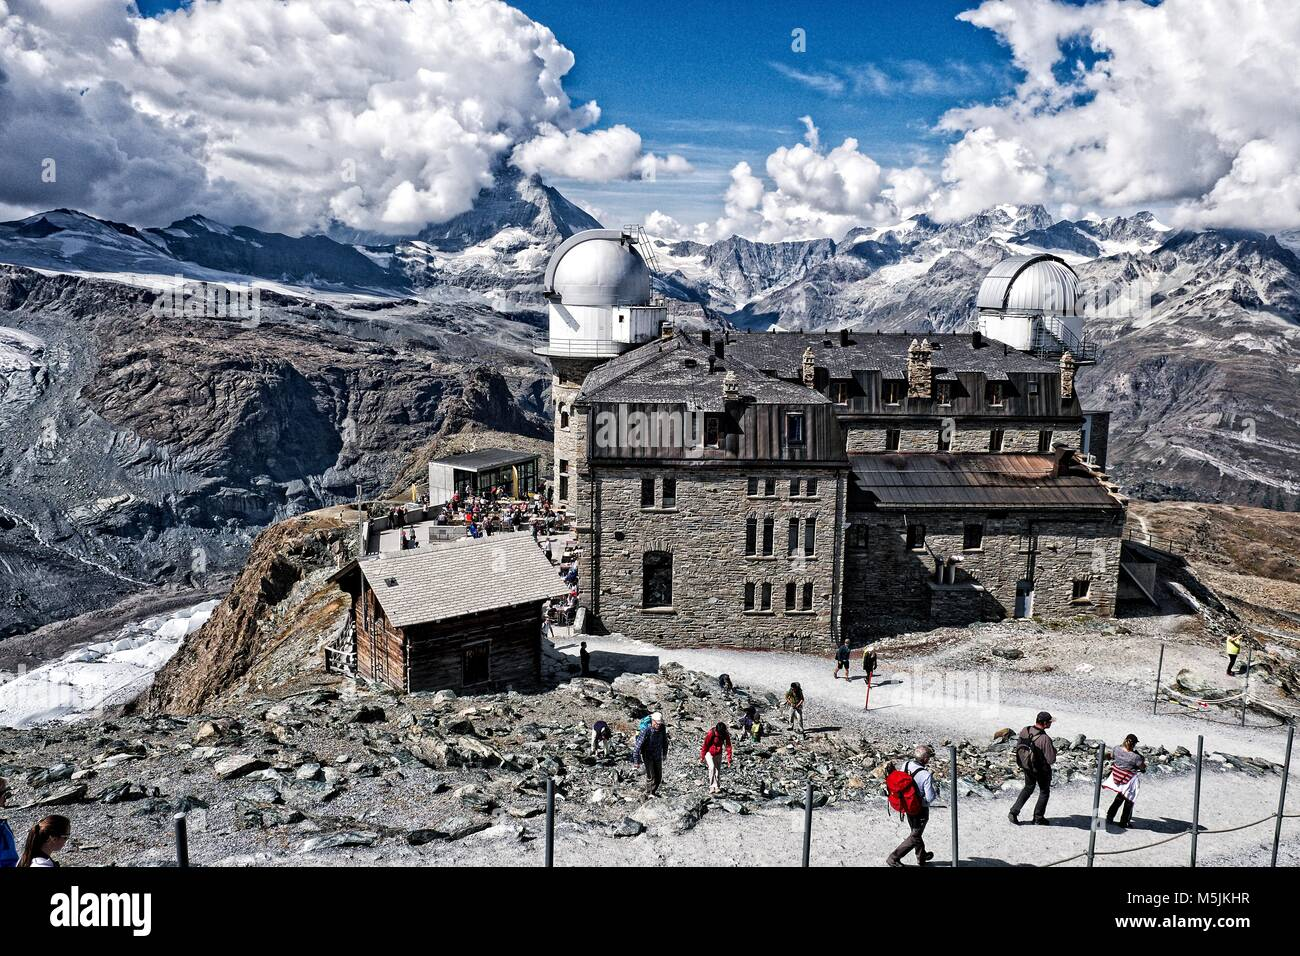 Gornergrat visitors centre, hotel and observatory is at the terminus of the Gornergrat railway above Zermatt. - Stock Image